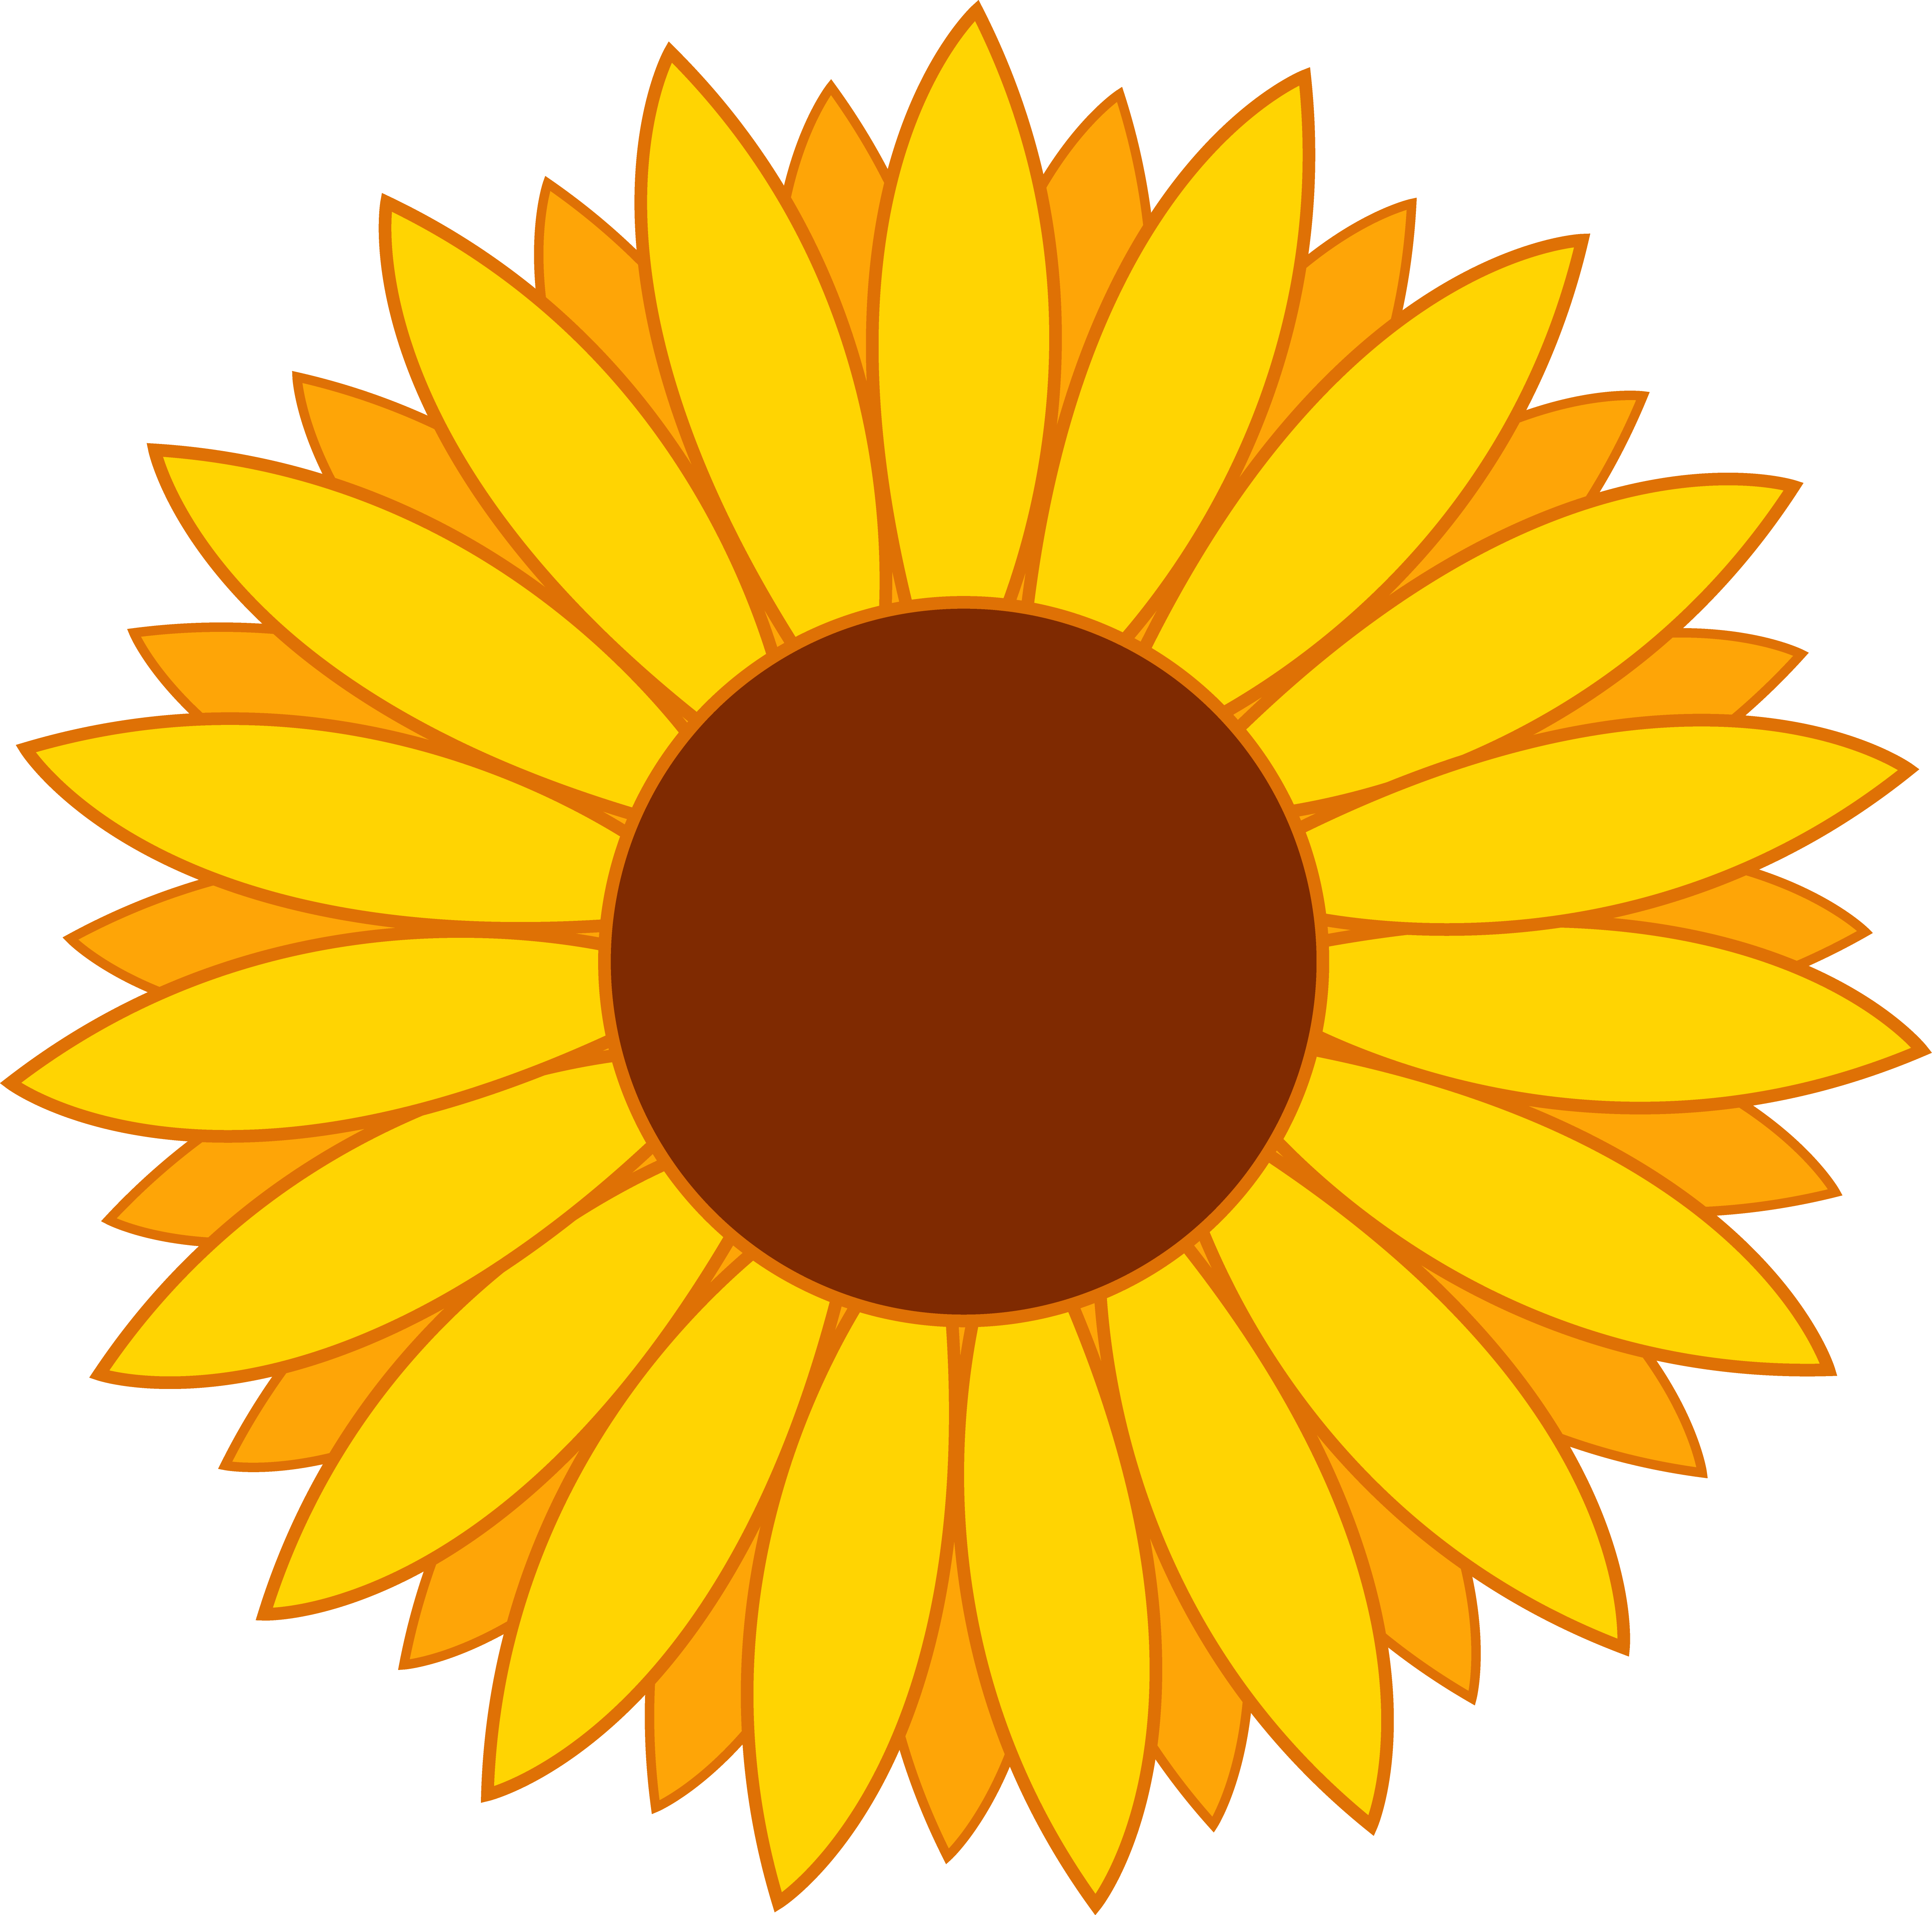 Sunflower clipart #5, Download drawings